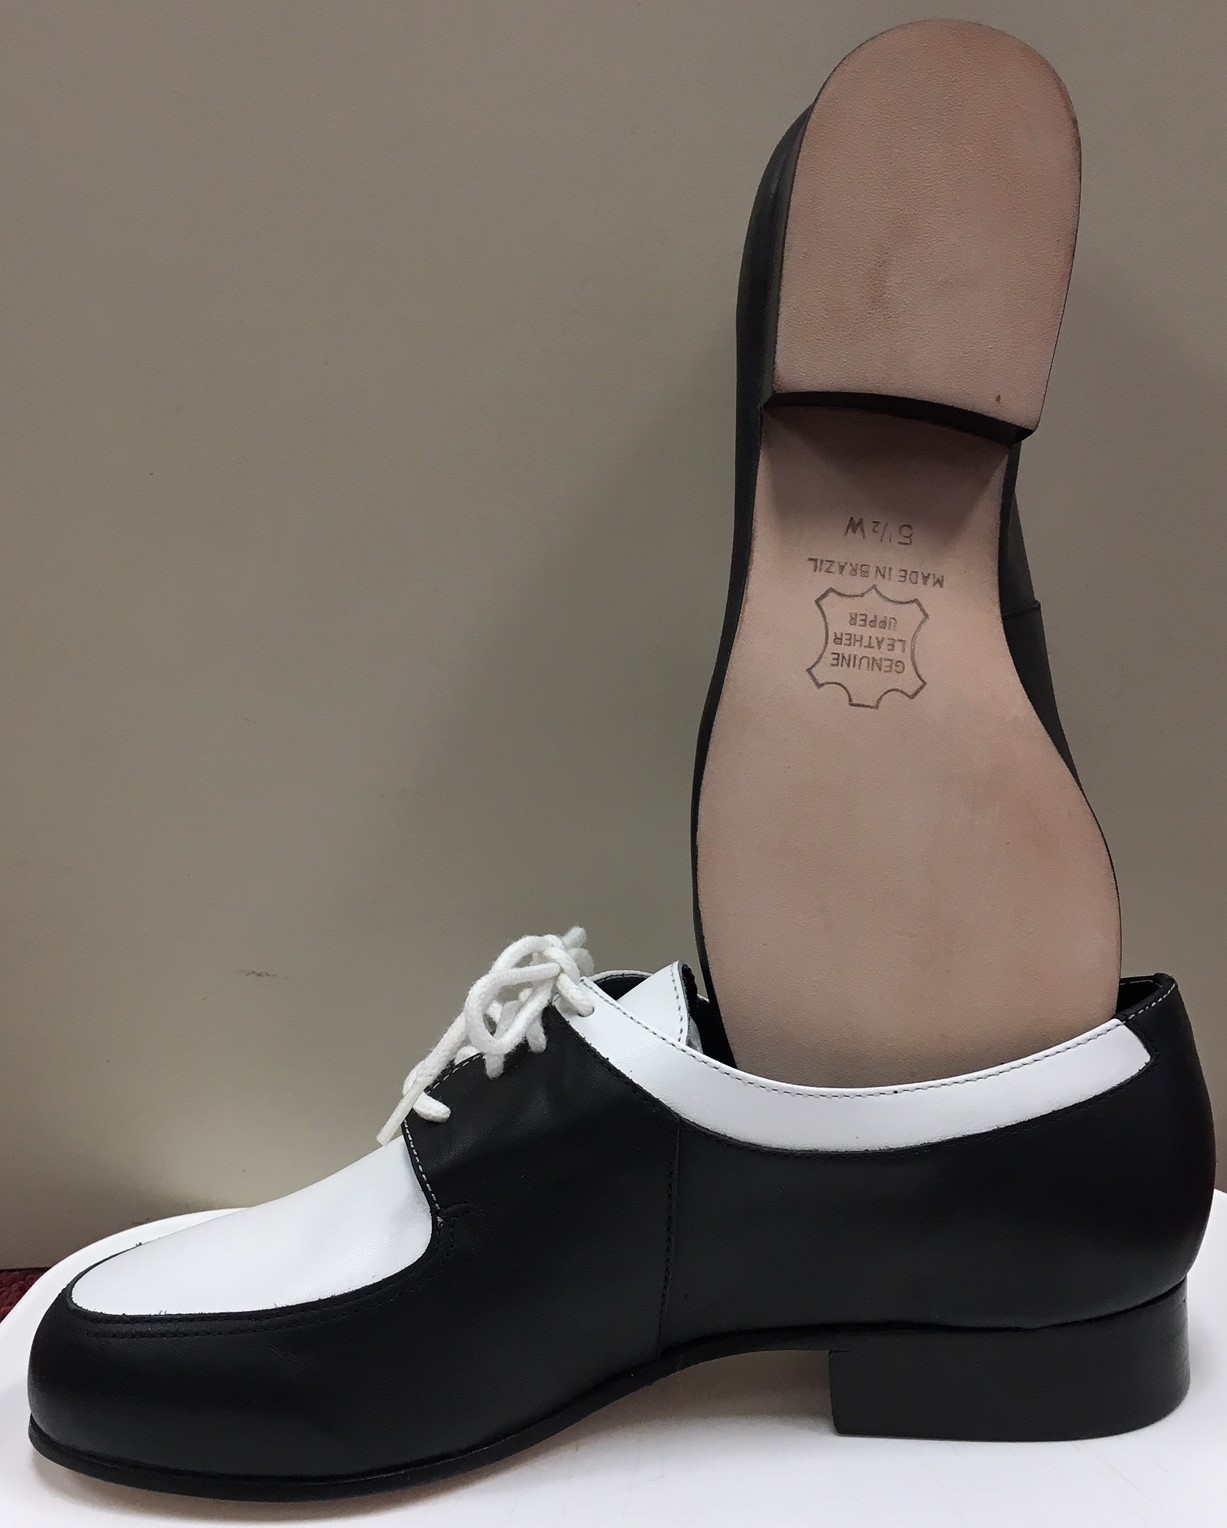 Dione 2 Tone Swing Shoe 1 1/2 Heel Character Shoes